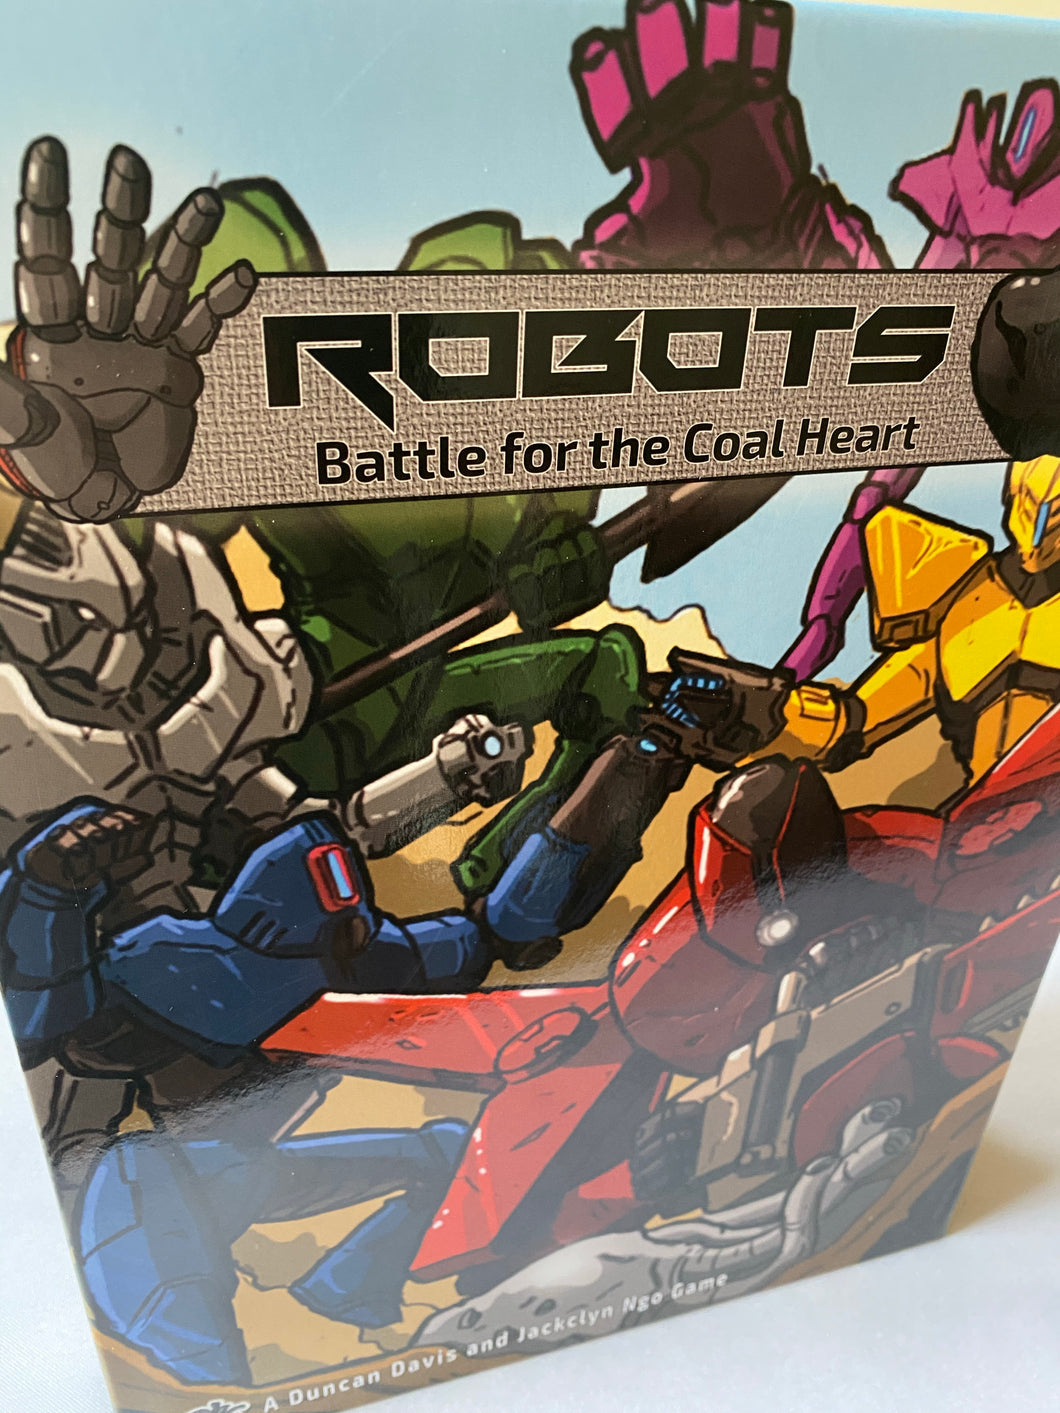 Robots Battle For The Coal Heart | Sherwood Games - Kickstarted Games